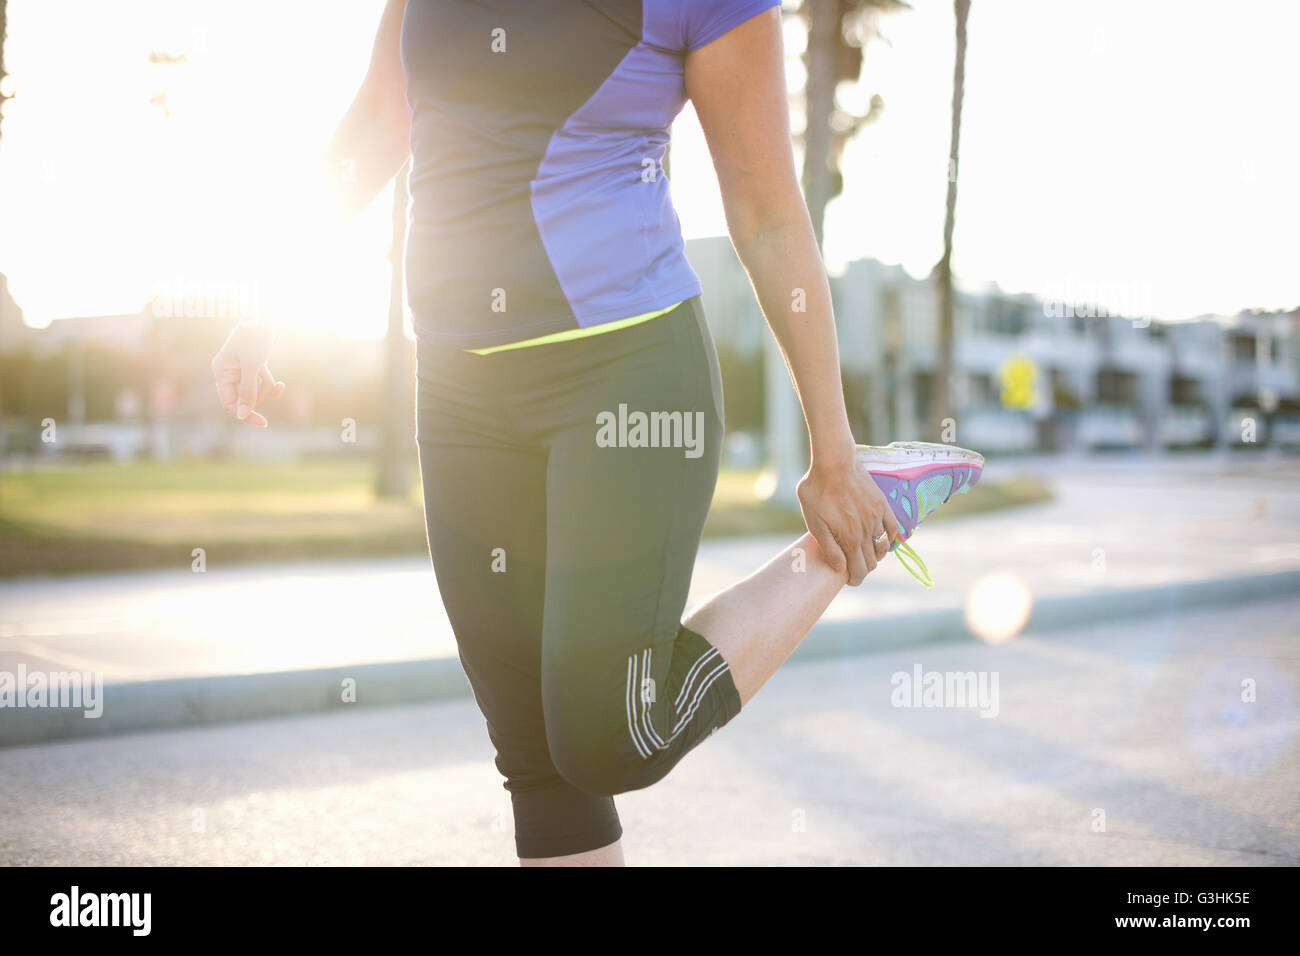 Mid section of woman wearing sports clothes holding ankle stretching leg - Stock Image